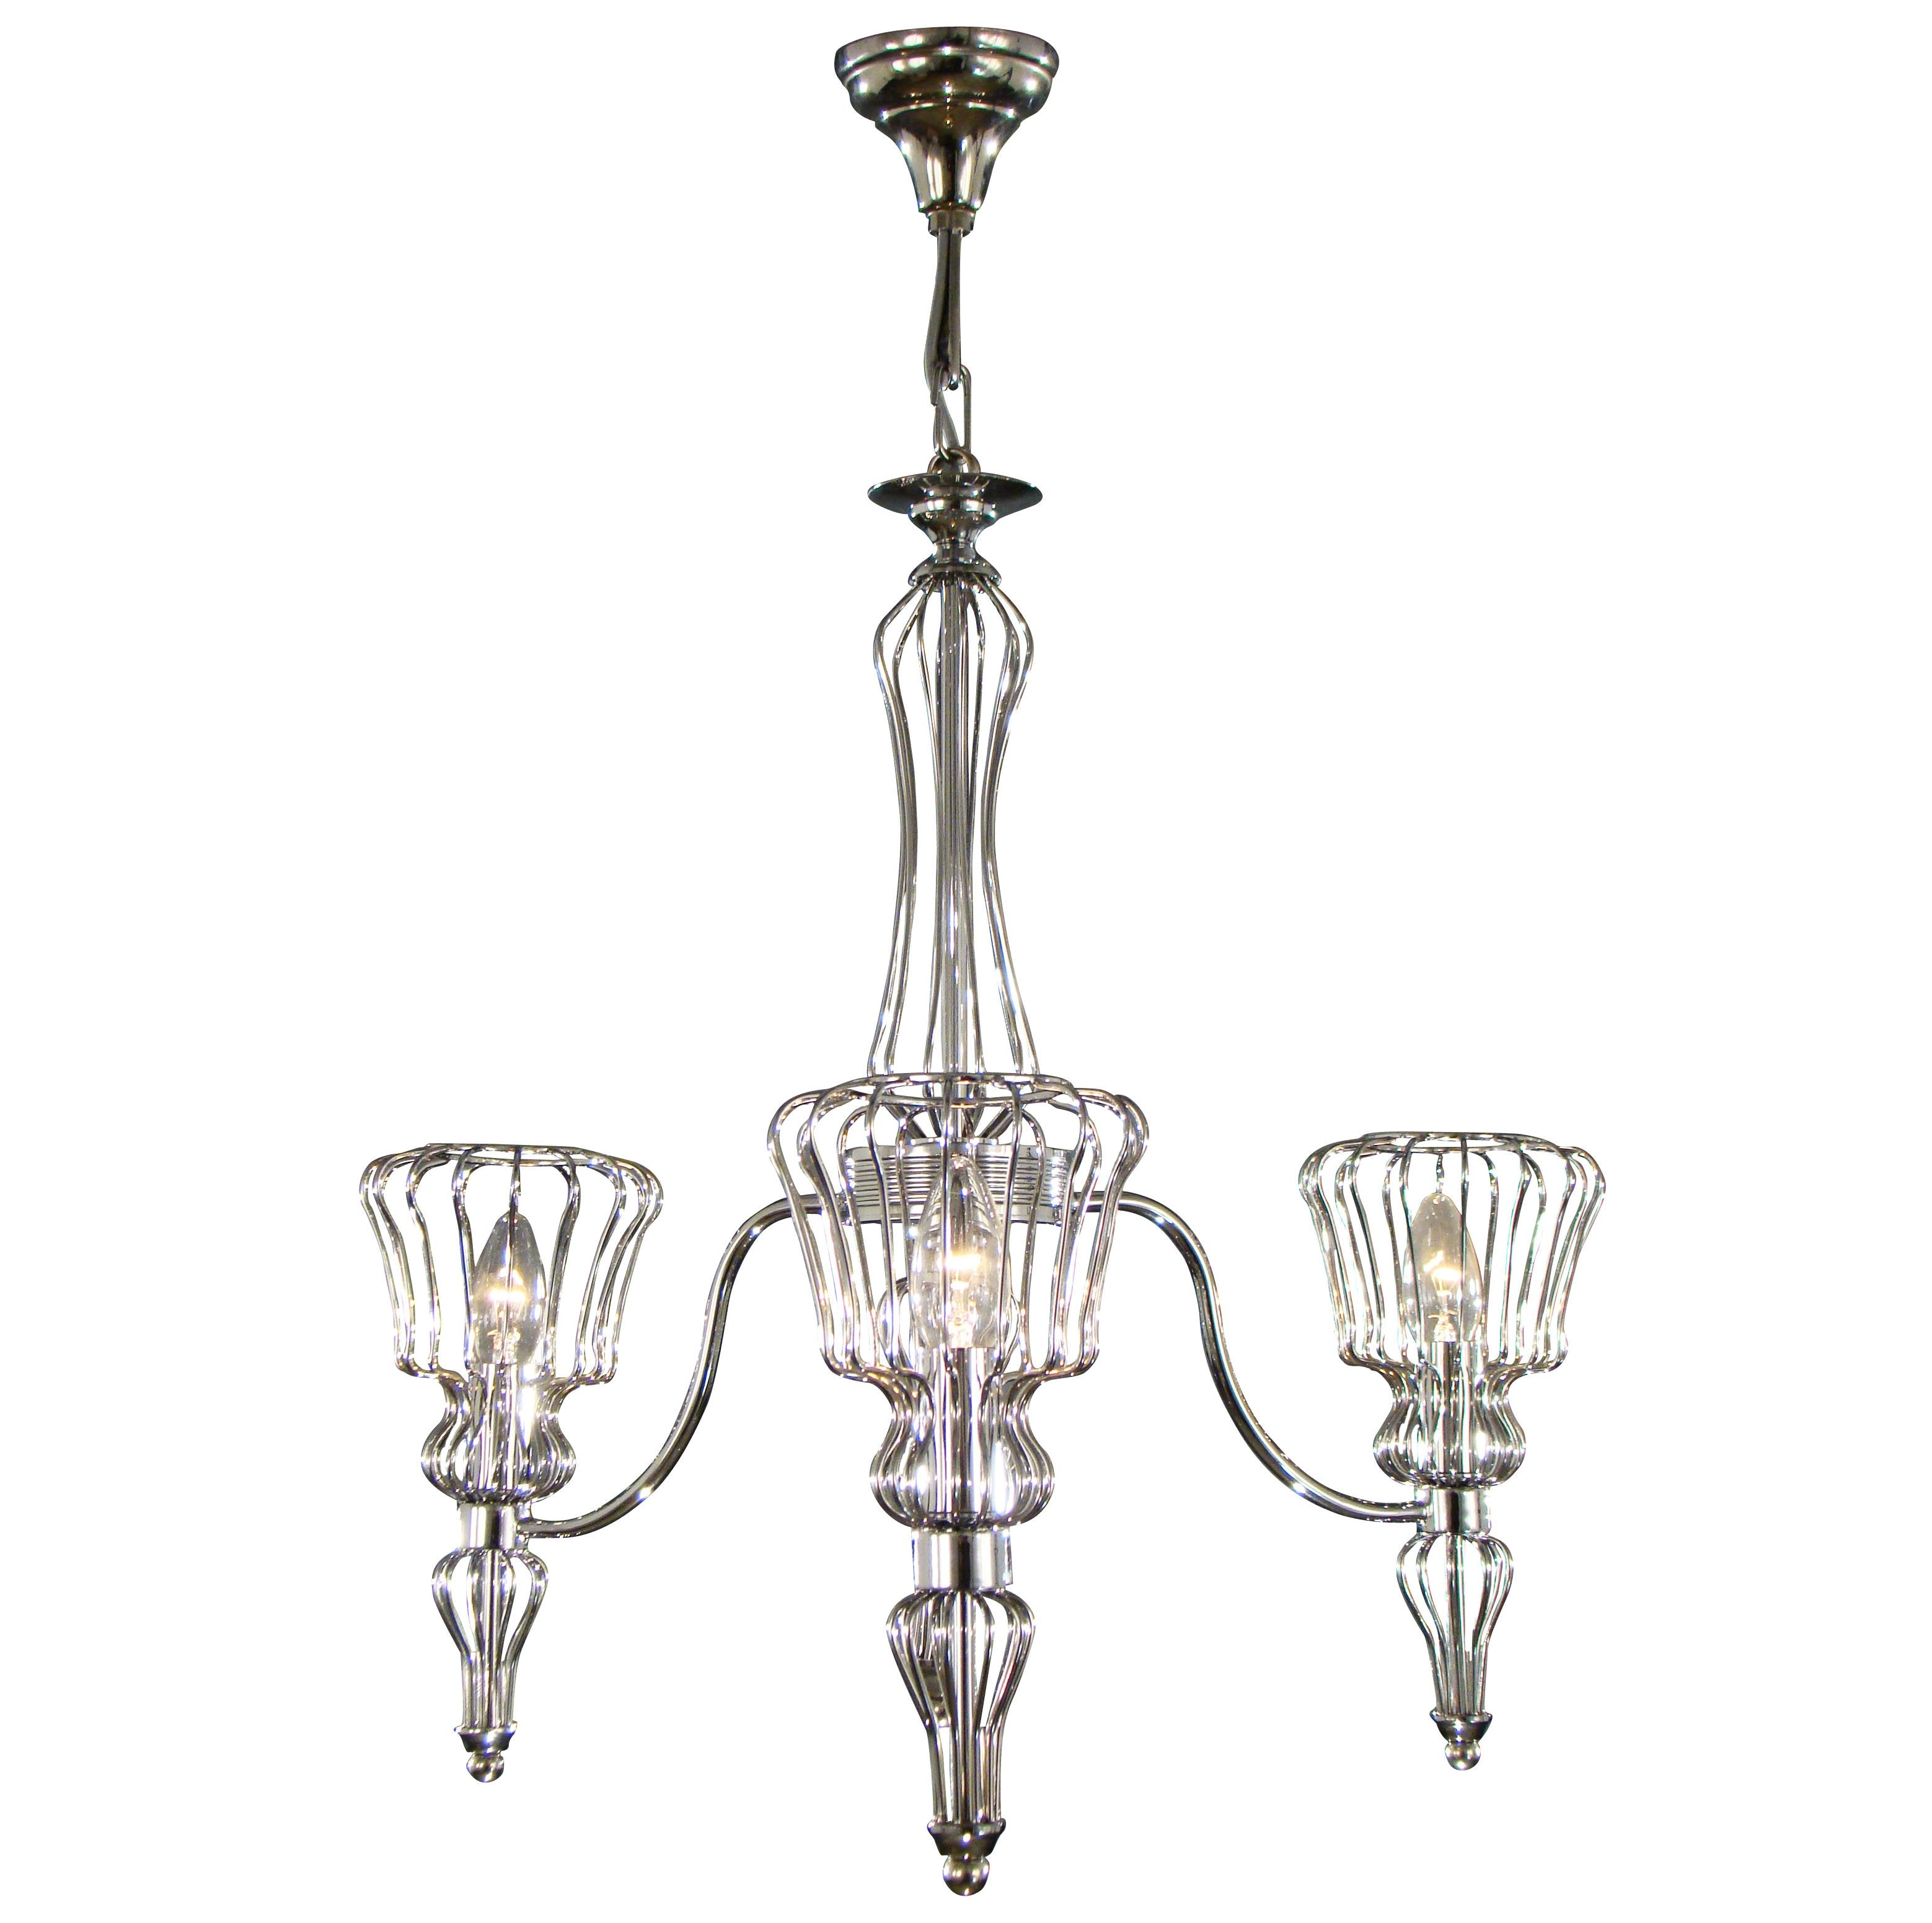 Asfour Crystal - Modern Chandelier - Chandelier - Chrome